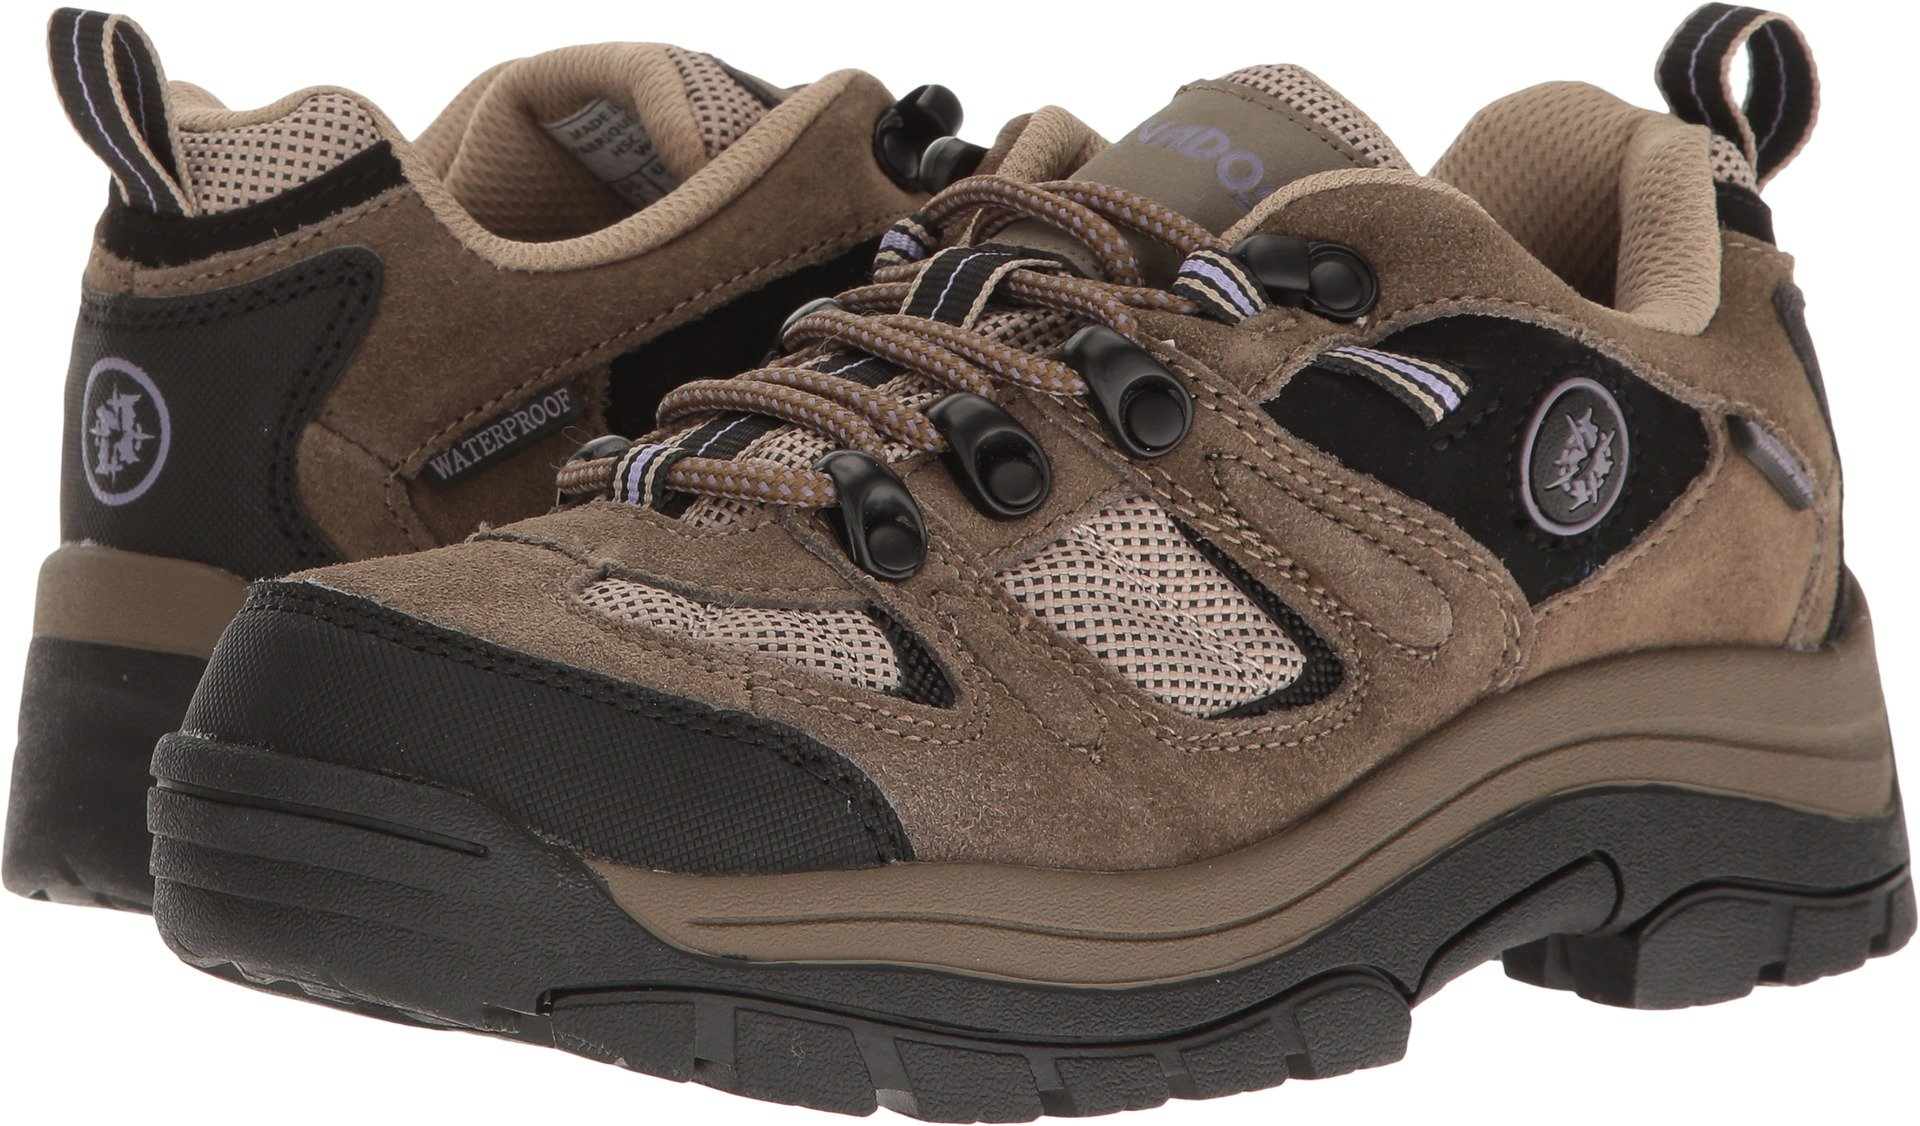 Nevados Women's Klondike Waterproof Low V4161W Hiking Boot,Dark Brown/Black/Taupe,9 M US